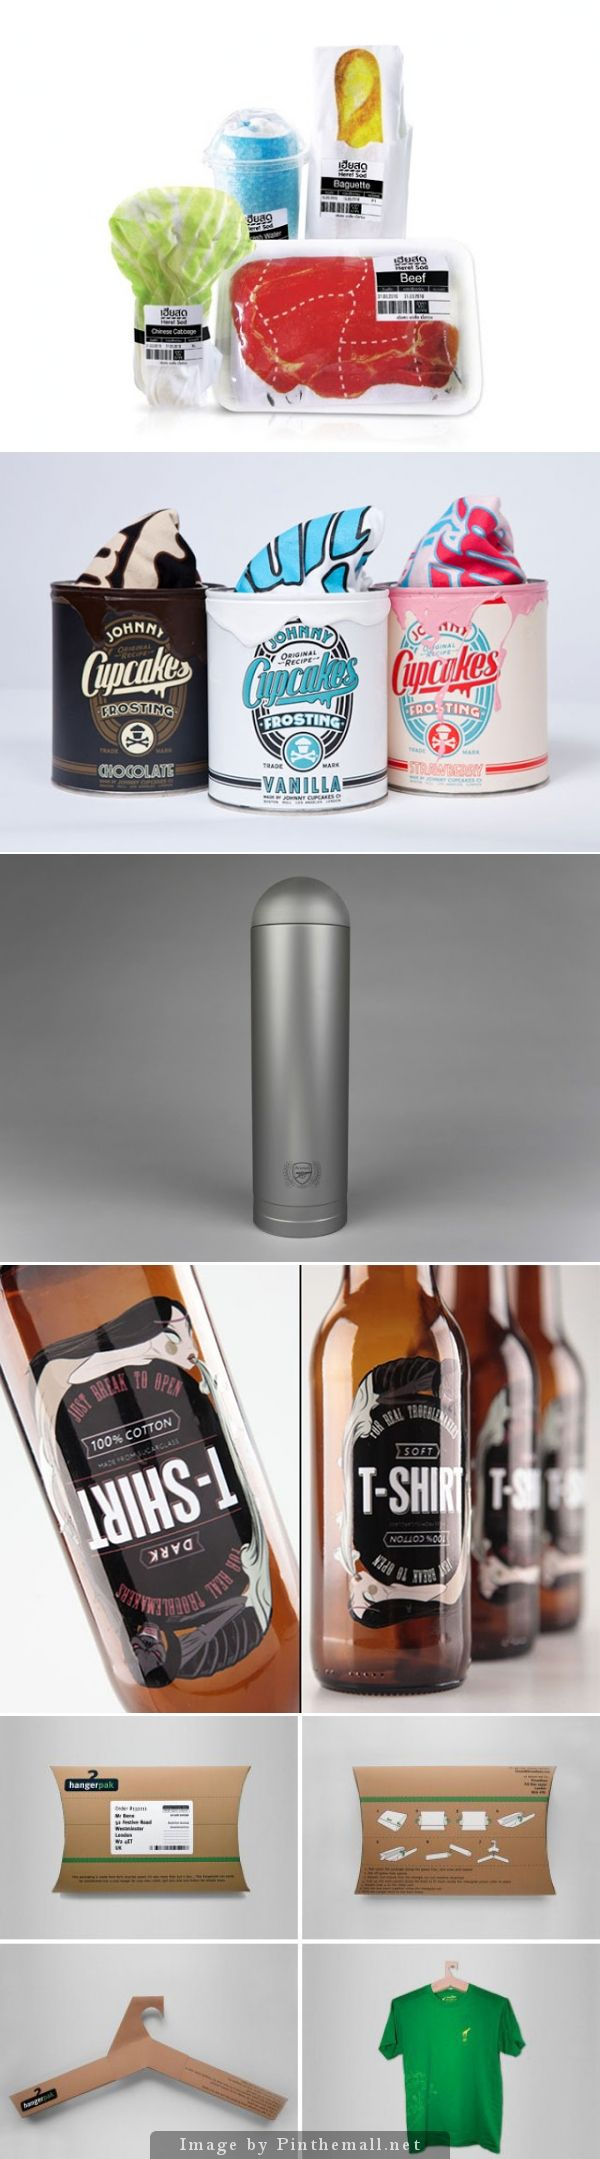 Mark Chapman shares with you 5 Awesome Examples of Bespoke Clothing #Packaging- http://www.packagingoftheworld.com/2014/11/5-awesome-examples-of-bespoke-clothing.html